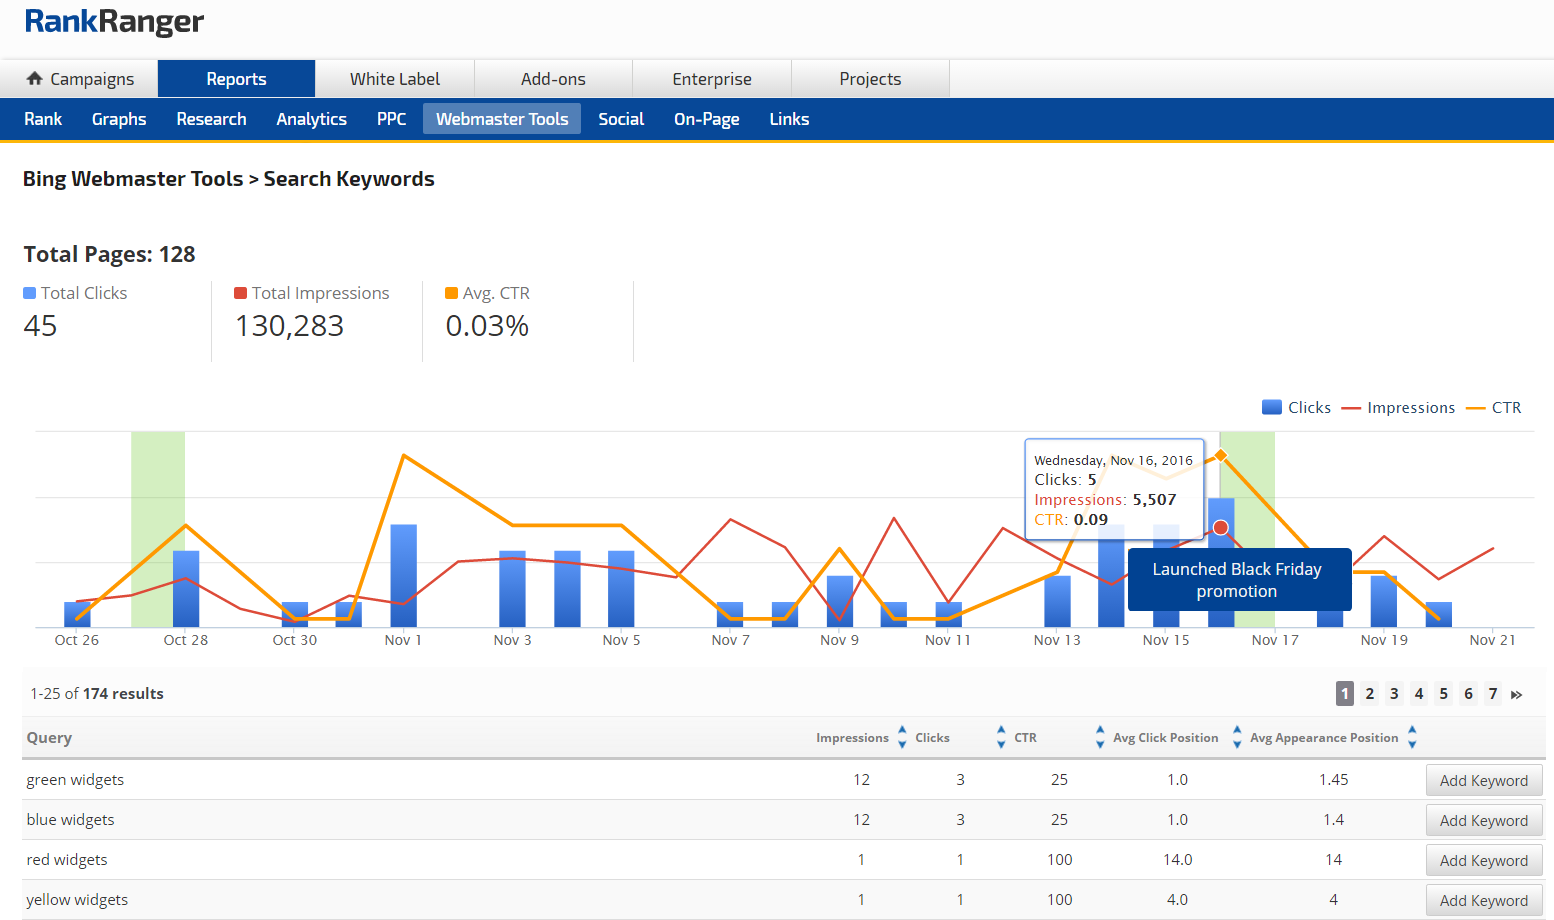 Bing Webmaster Tools Search Keywords report